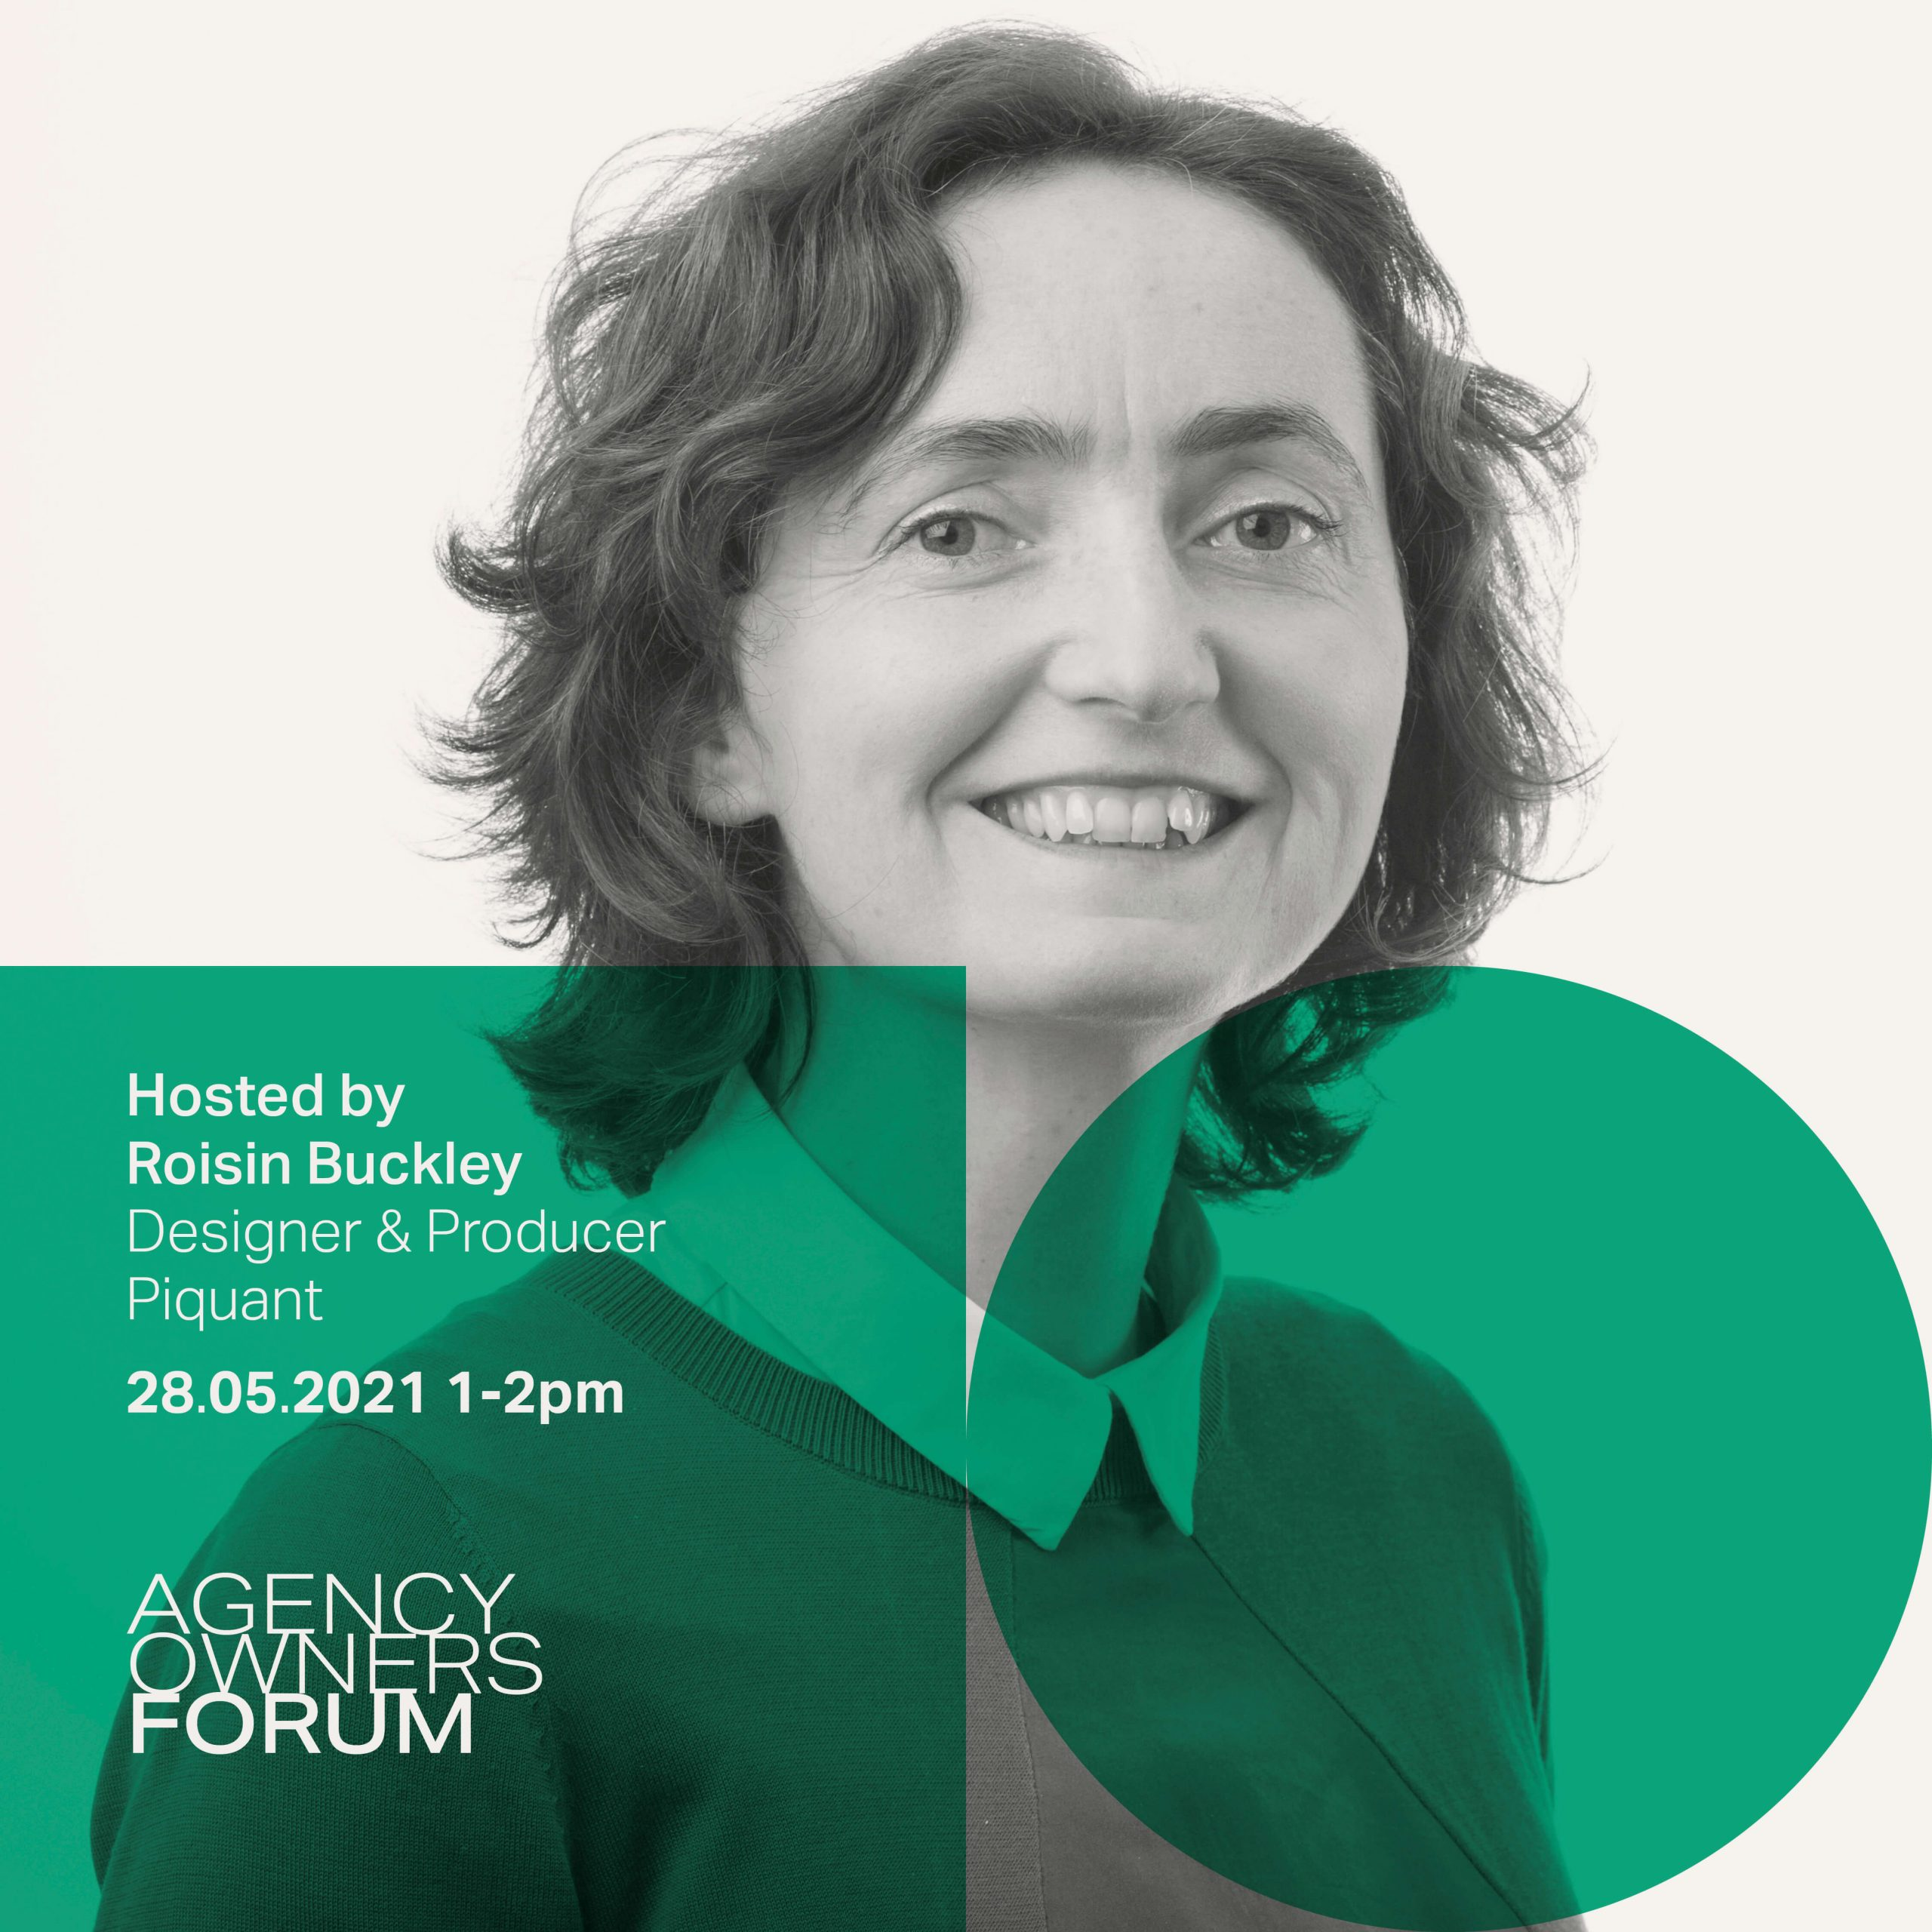 Roisin Buckley Agency Owners Forum